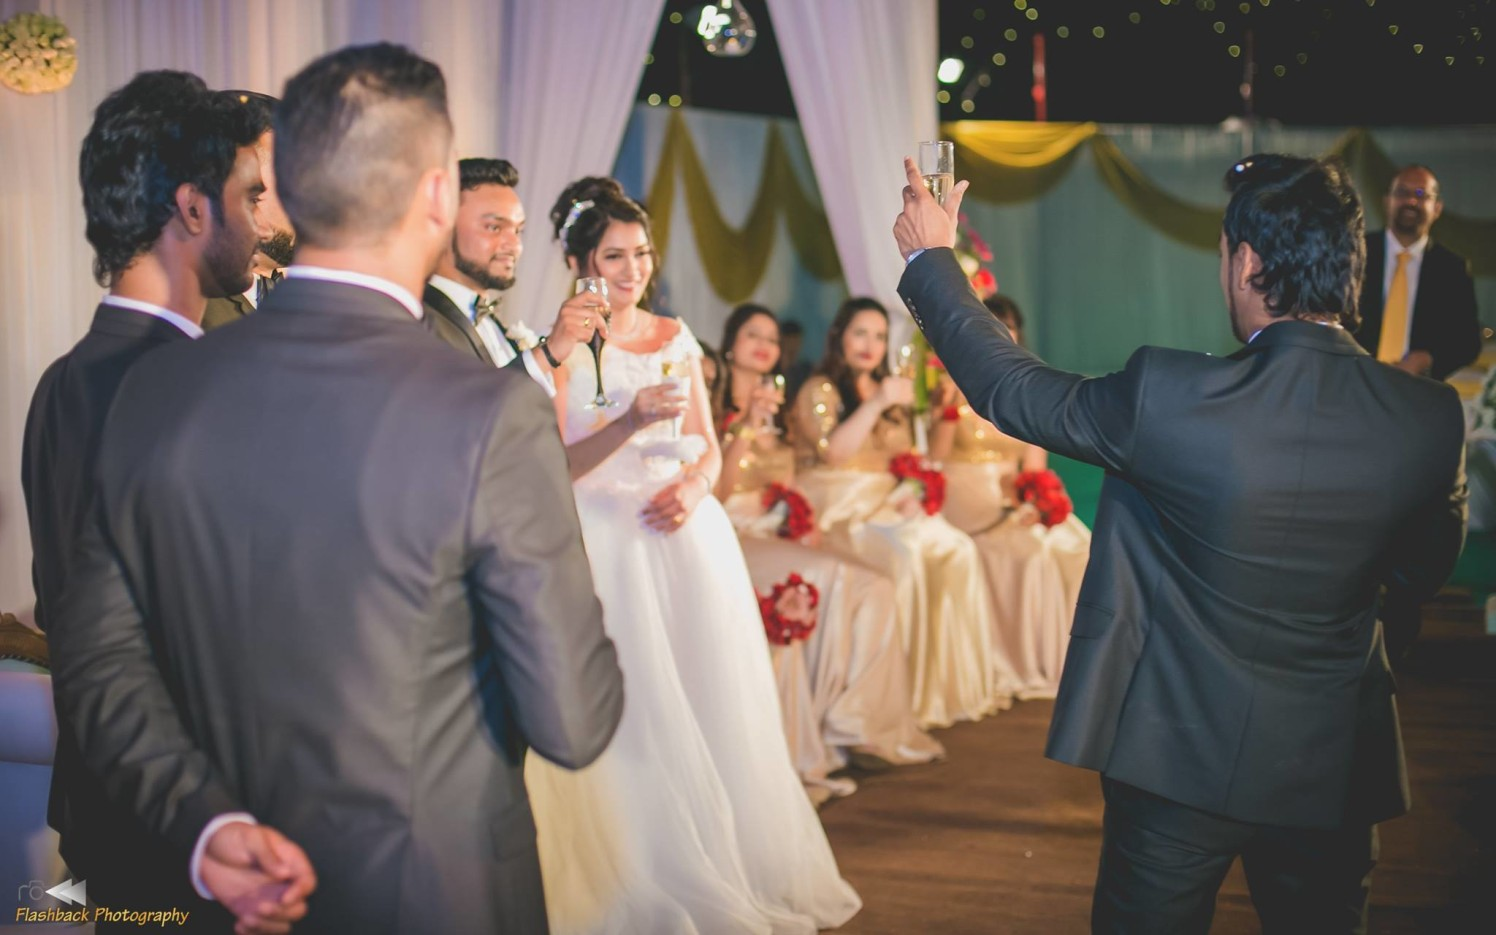 Cheers to the celebration! by Flashback photography  Wedding-photography | Weddings Photos & Ideas